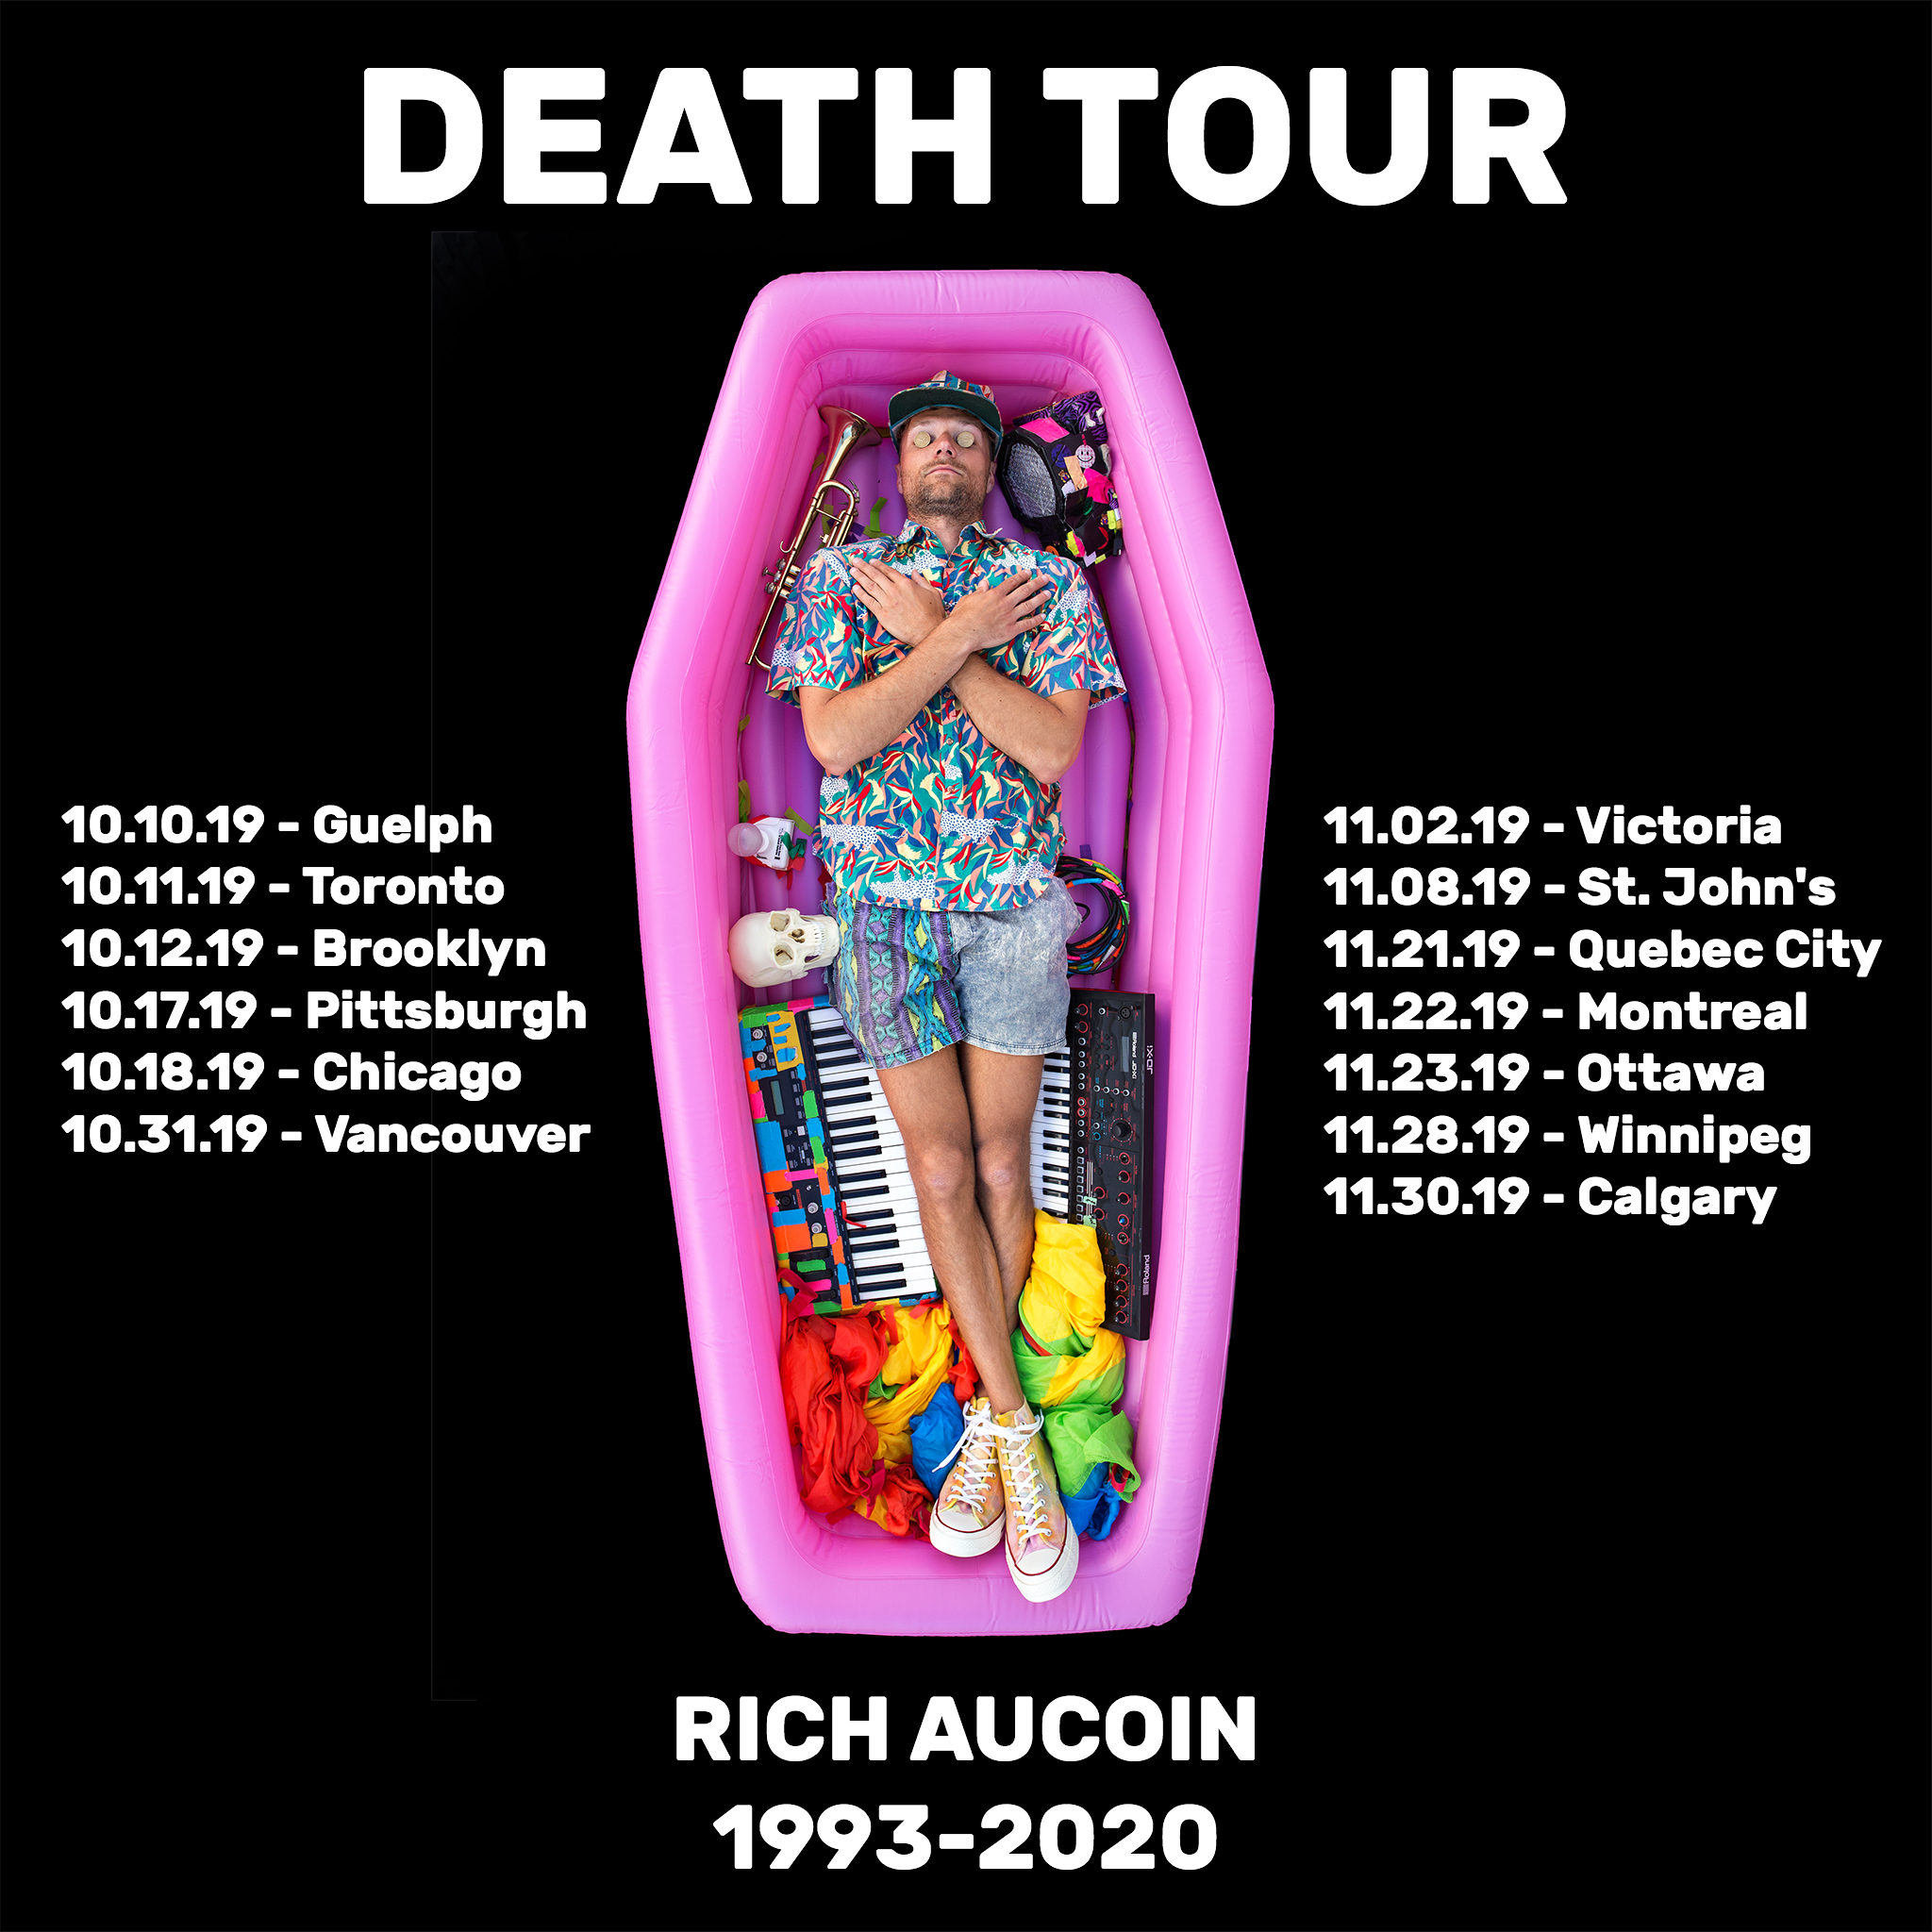 Rich Aucoin Death Tour.jpg